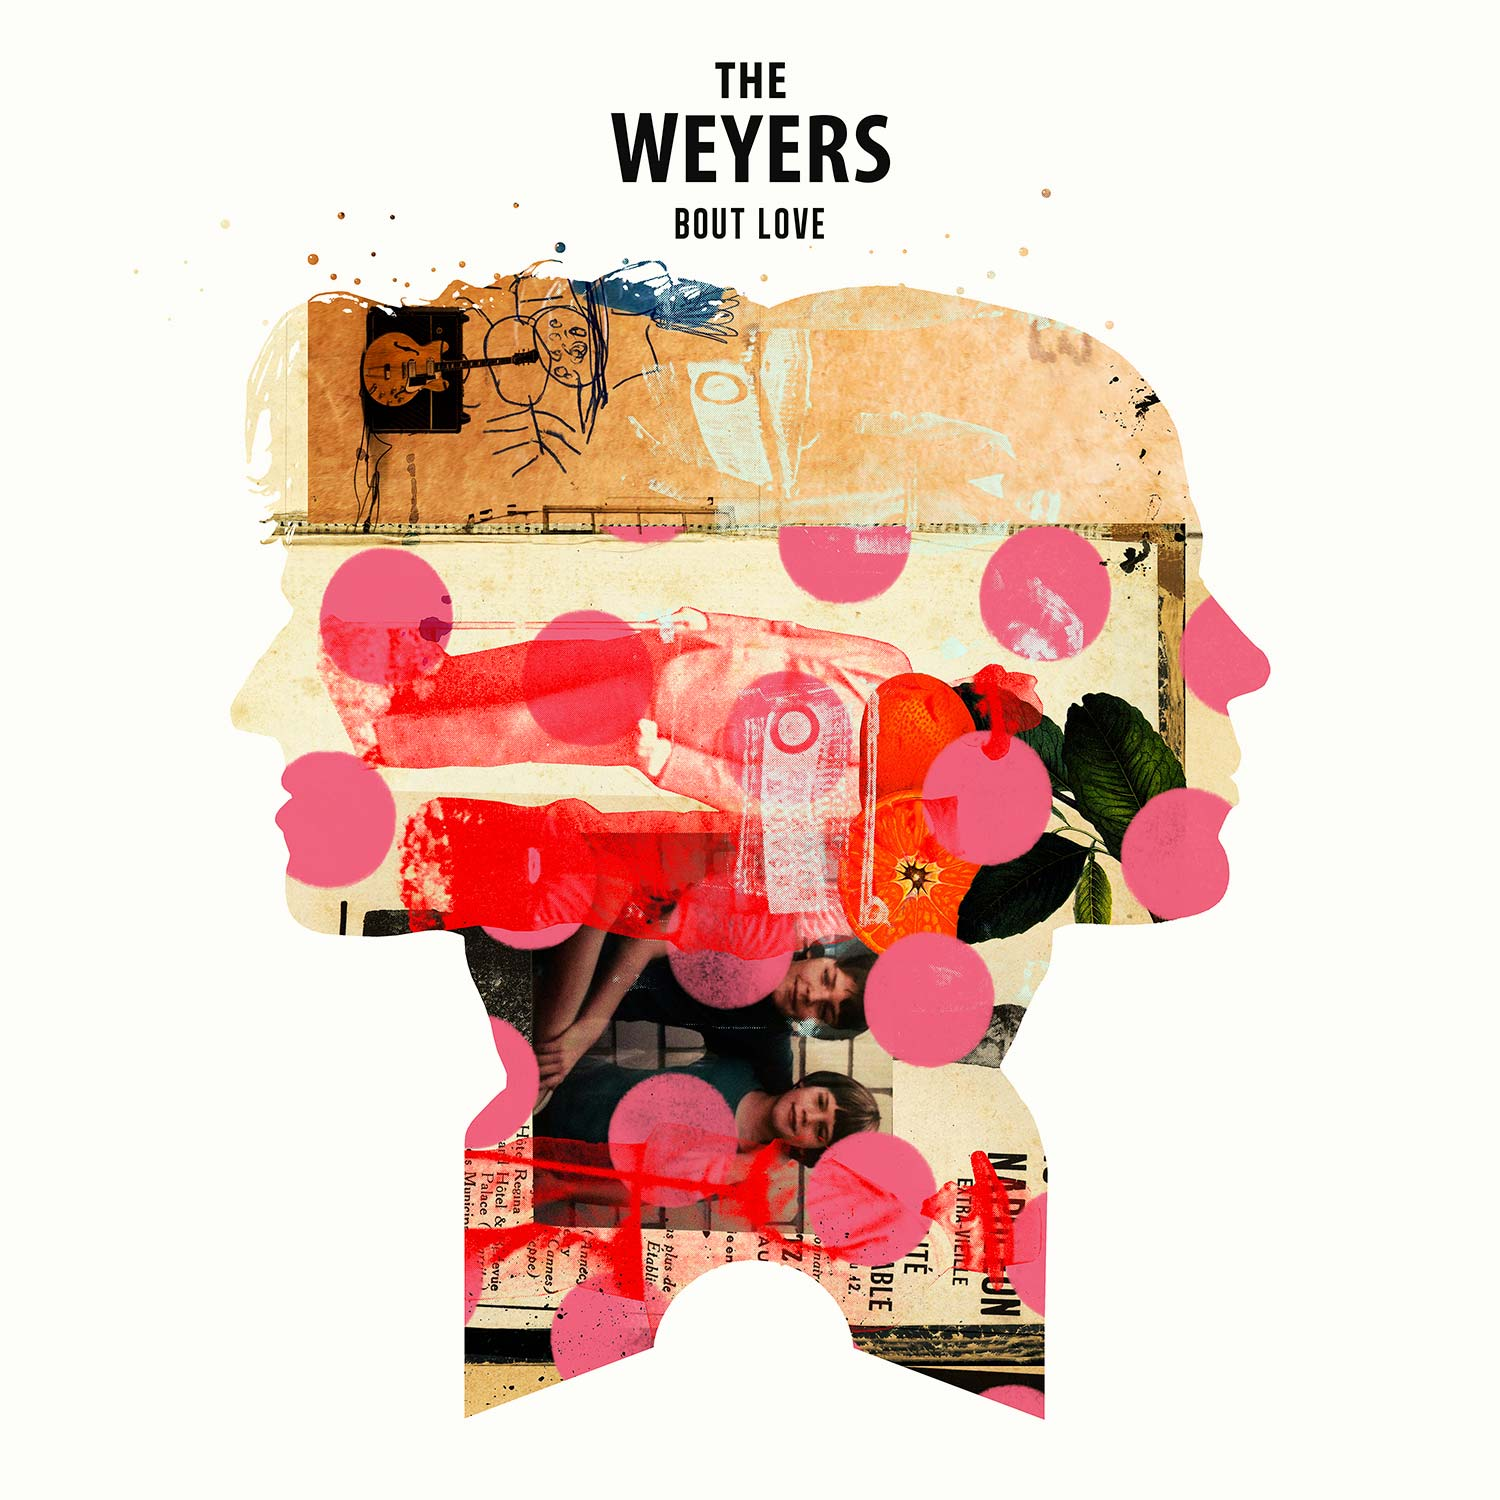 The Weyers. Out Of Our Heads. 19